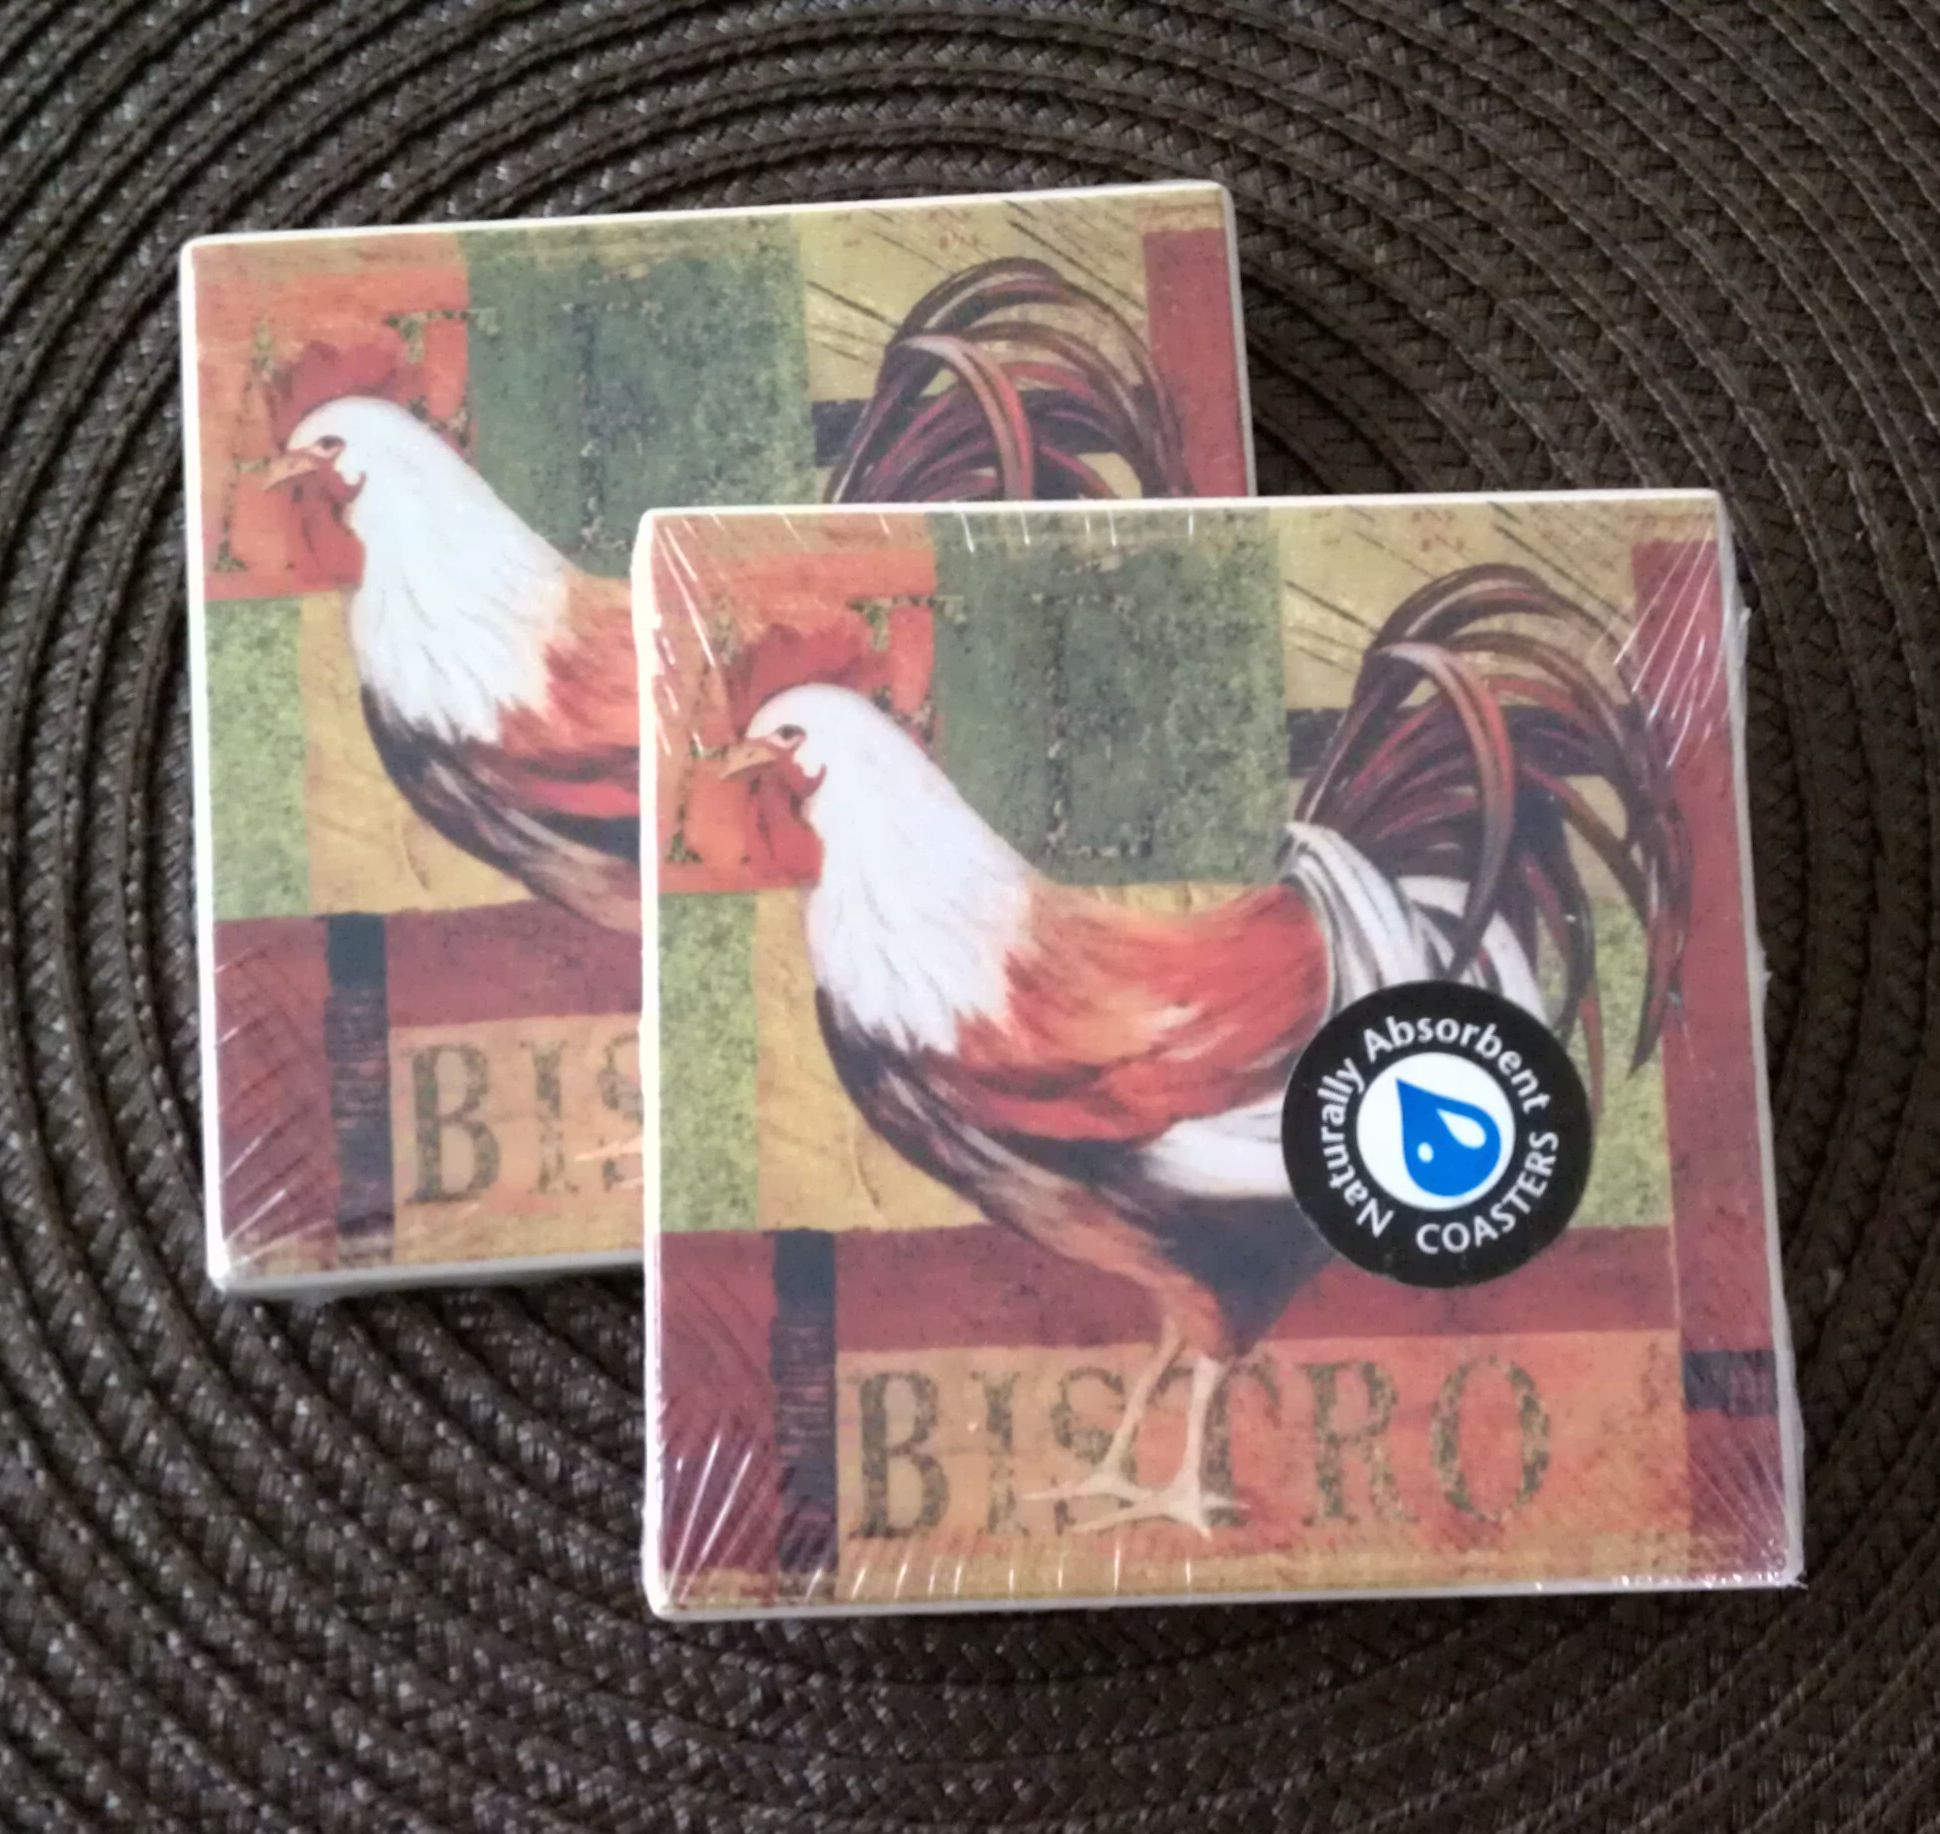 Natural absorbent stone bistro rooster cork bottom coasters set of two ebay - Stone absorbent coasters ...